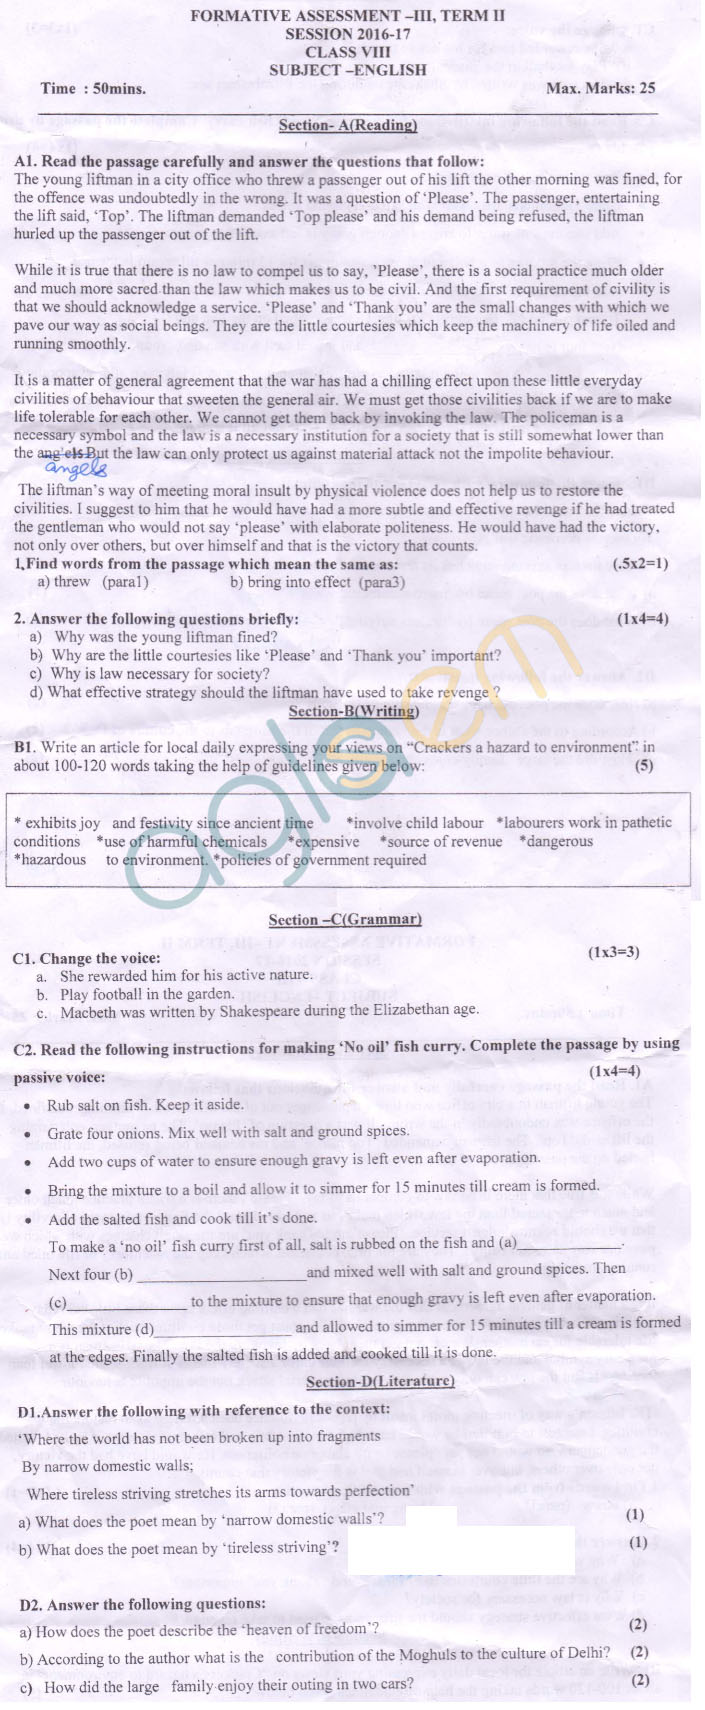 CBSE Class 8 Formative Assessment III Question Paper